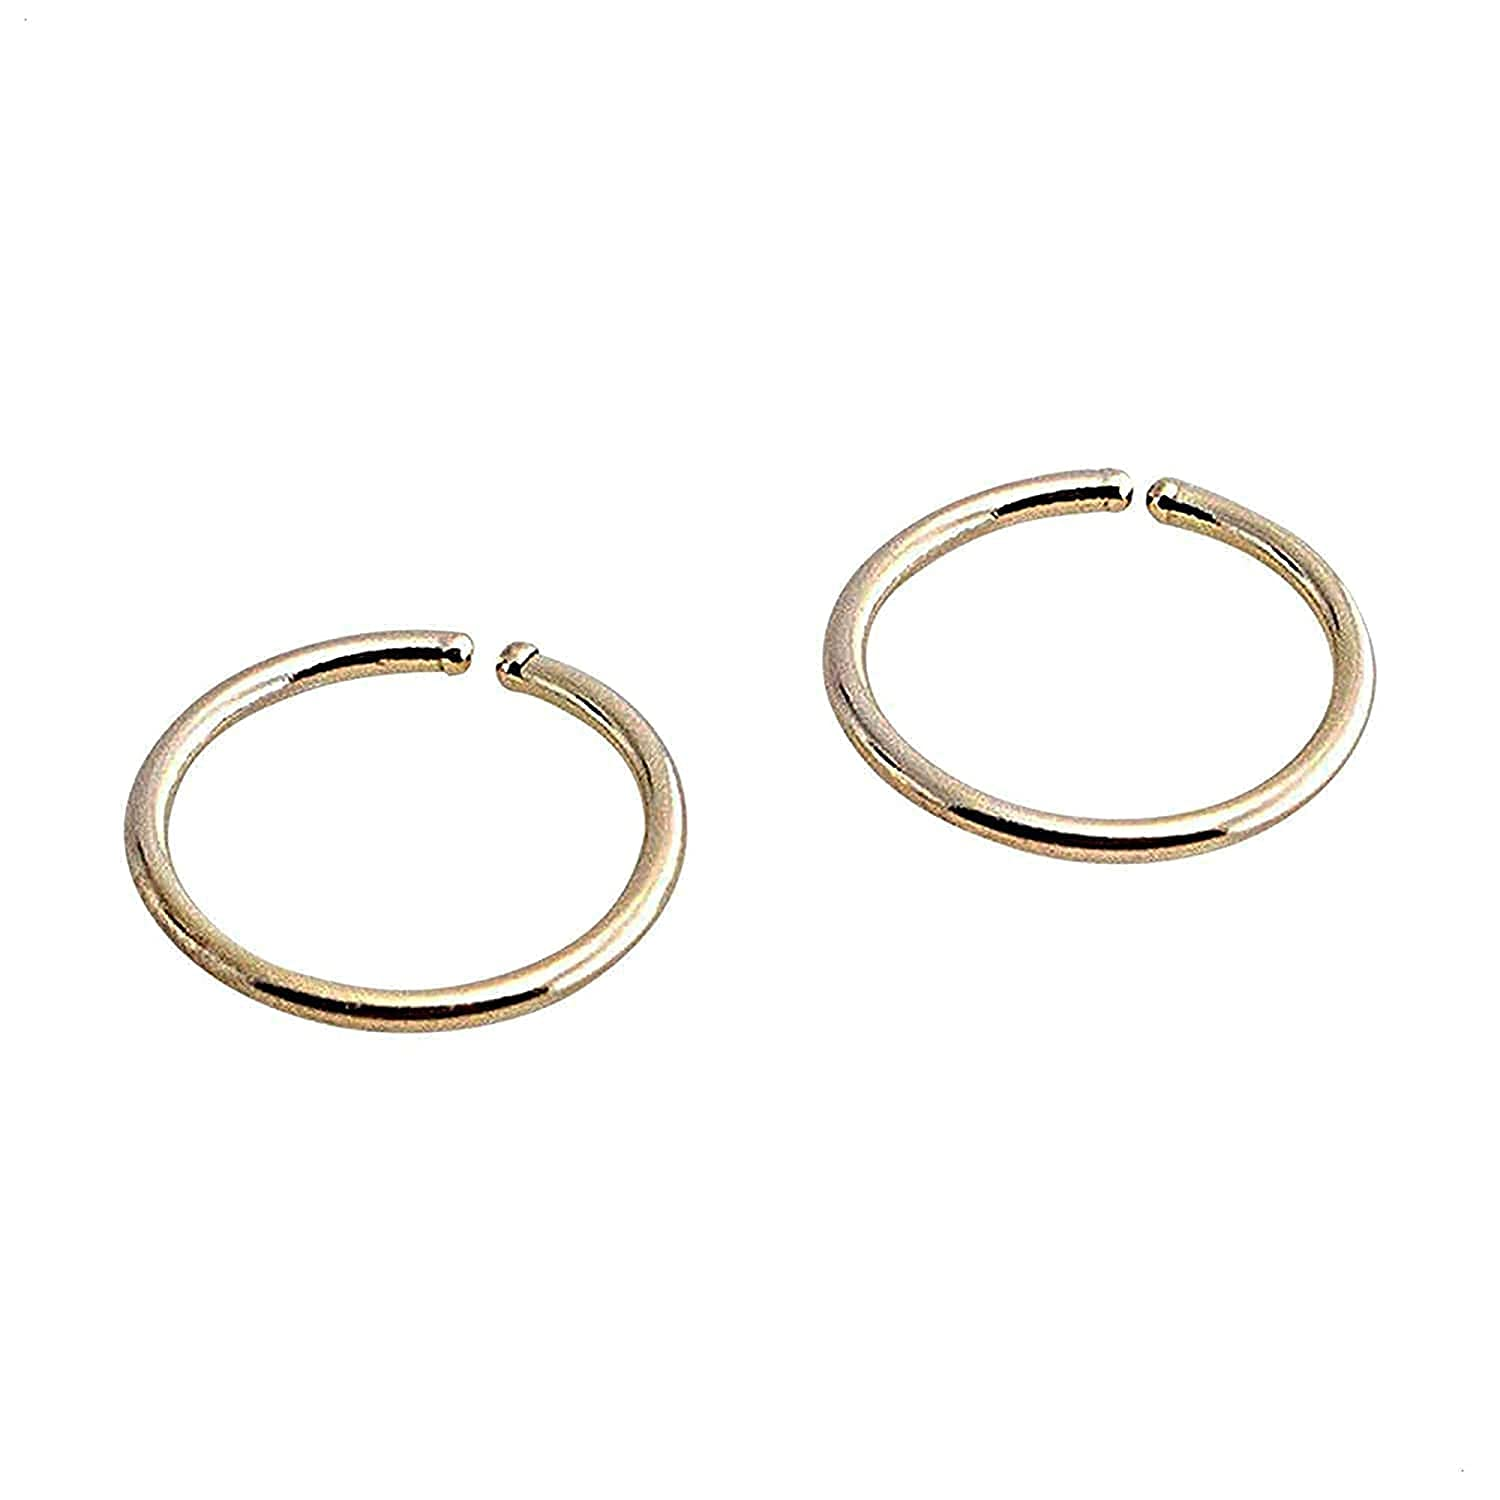 Mini New item 5.1mm or 0.19 Overseas parallel import regular item Inch Extra and Ring Small Tiny 14K Open